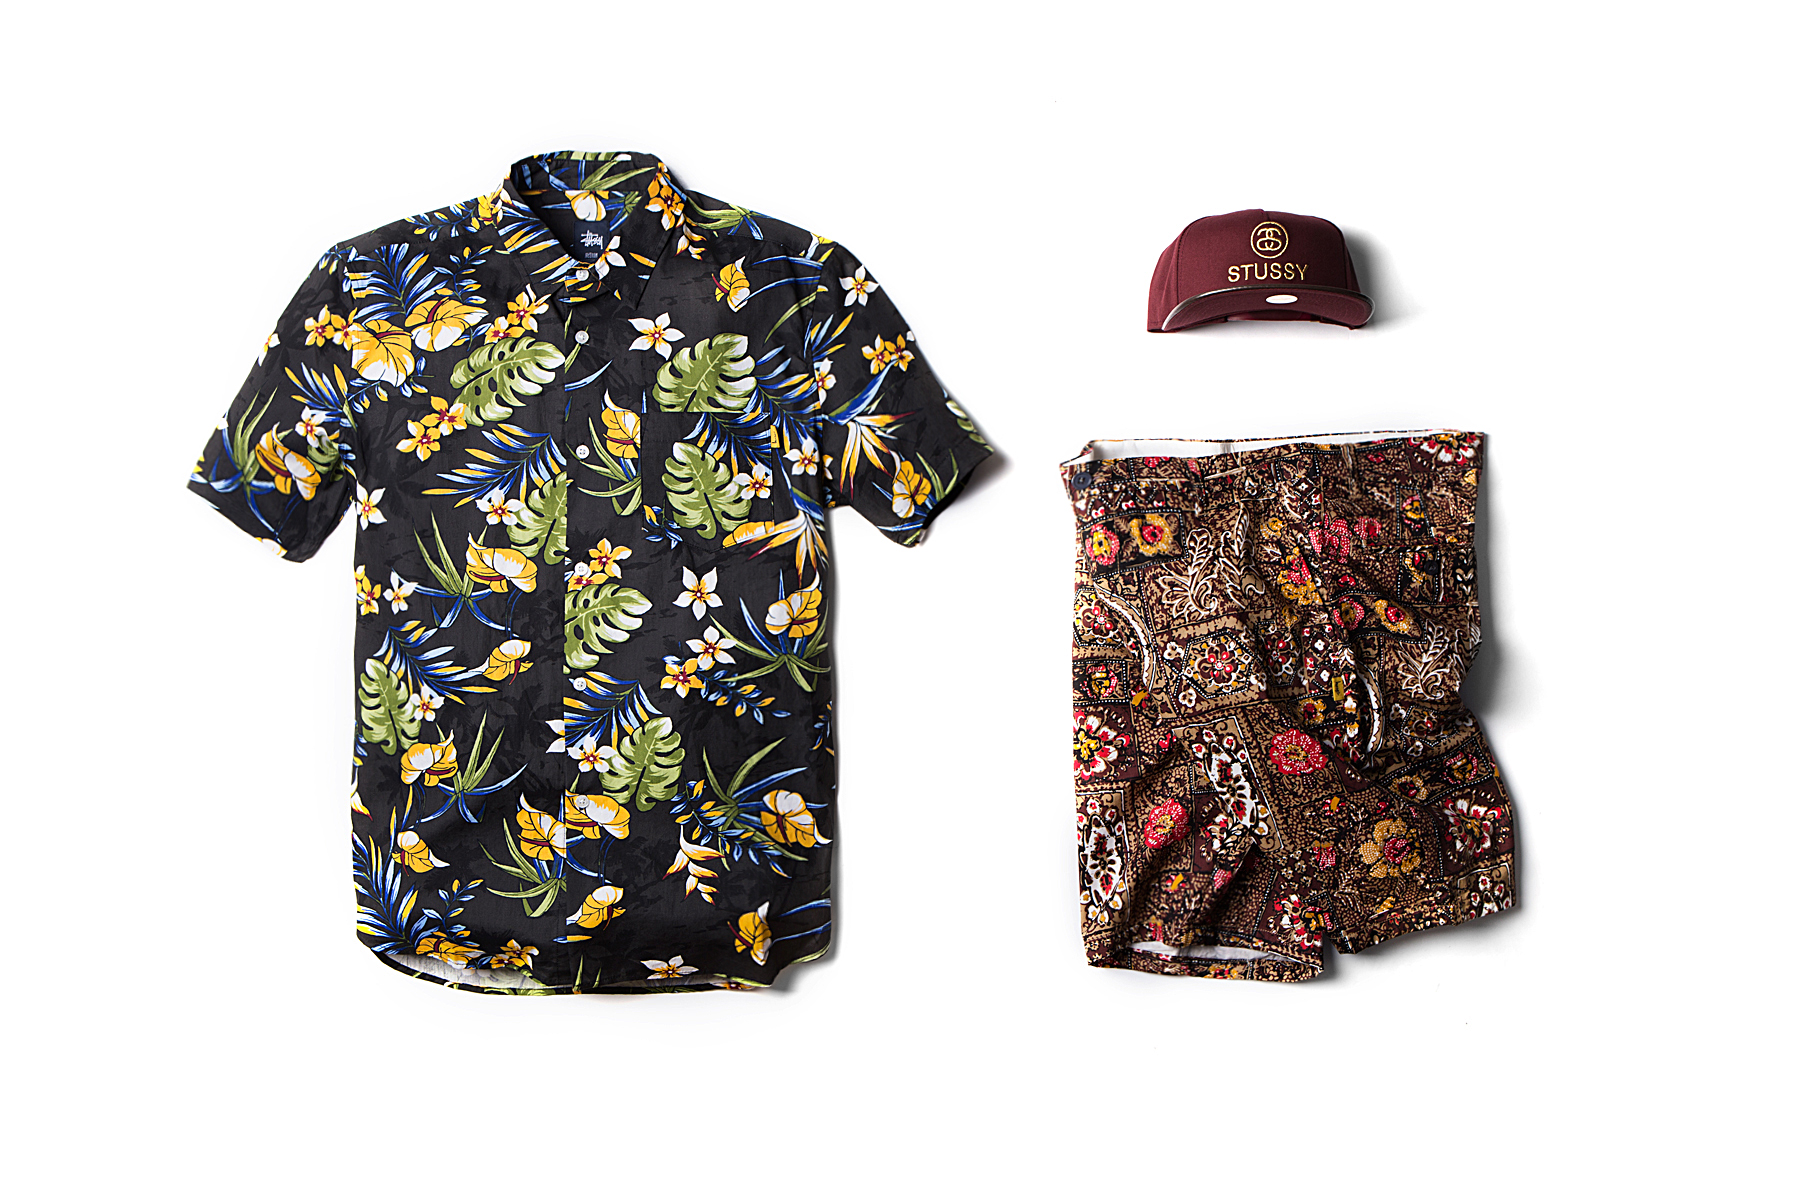 Stussy 2014 Spring/Summer New Arrivals